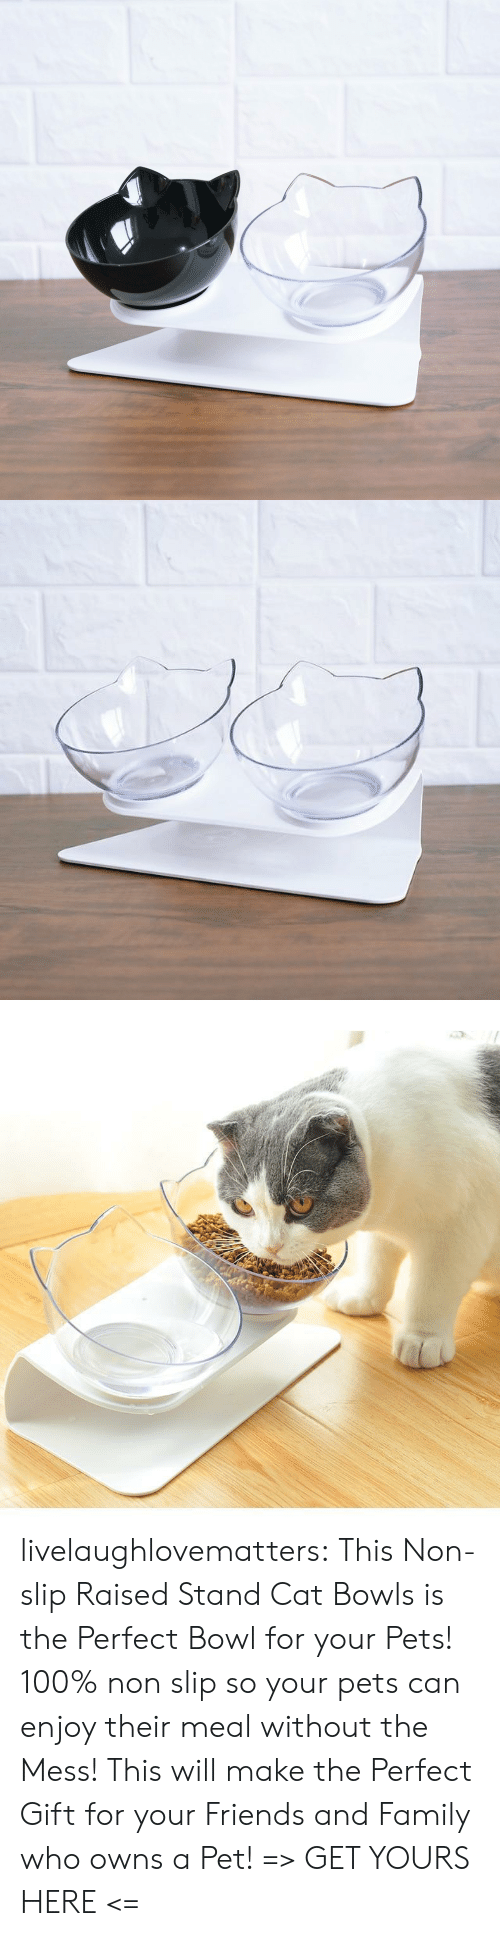 Family, Friends, and Tumblr: livelaughlovematters: ThisNon-slip Raised Stand Cat Bowls is the Perfect Bowl for your Pets! 100% non slip so your pets can enjoy their meal without the Mess! This will make the Perfect Gift for your Friends and Family who owns a Pet! => GET YOURS HERE <=